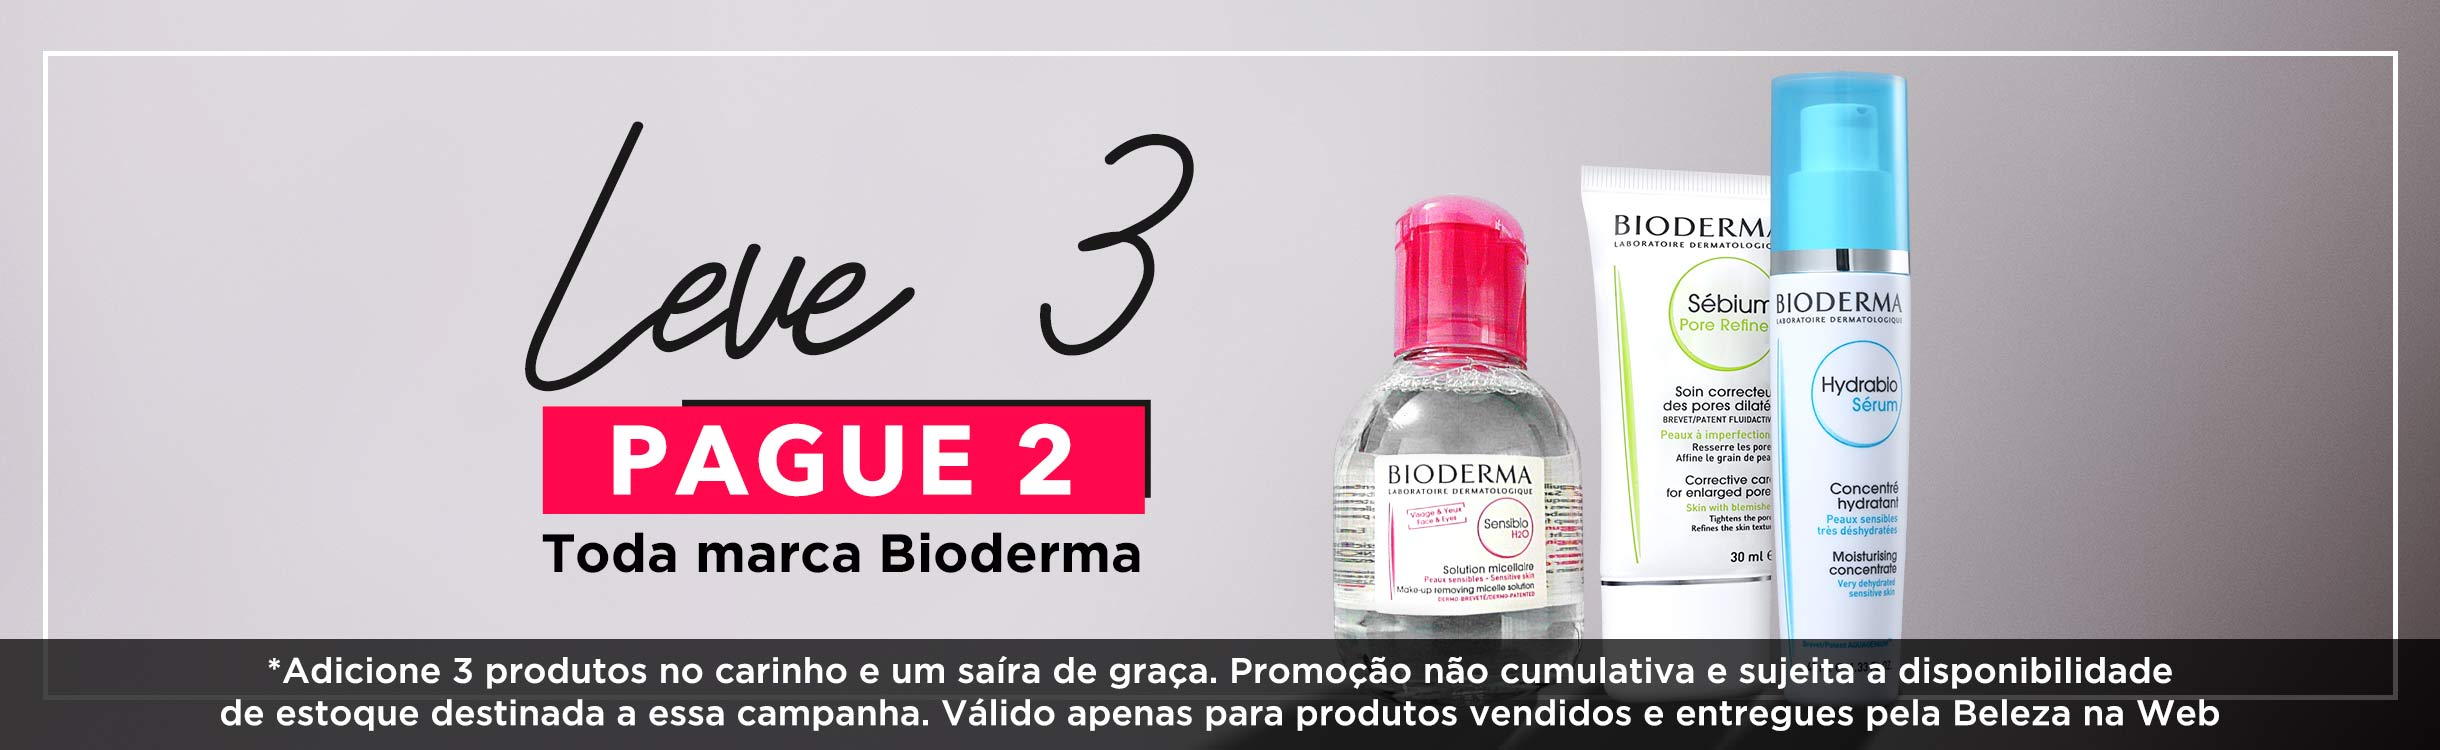 Leve 3 Pague 2 Bioderma